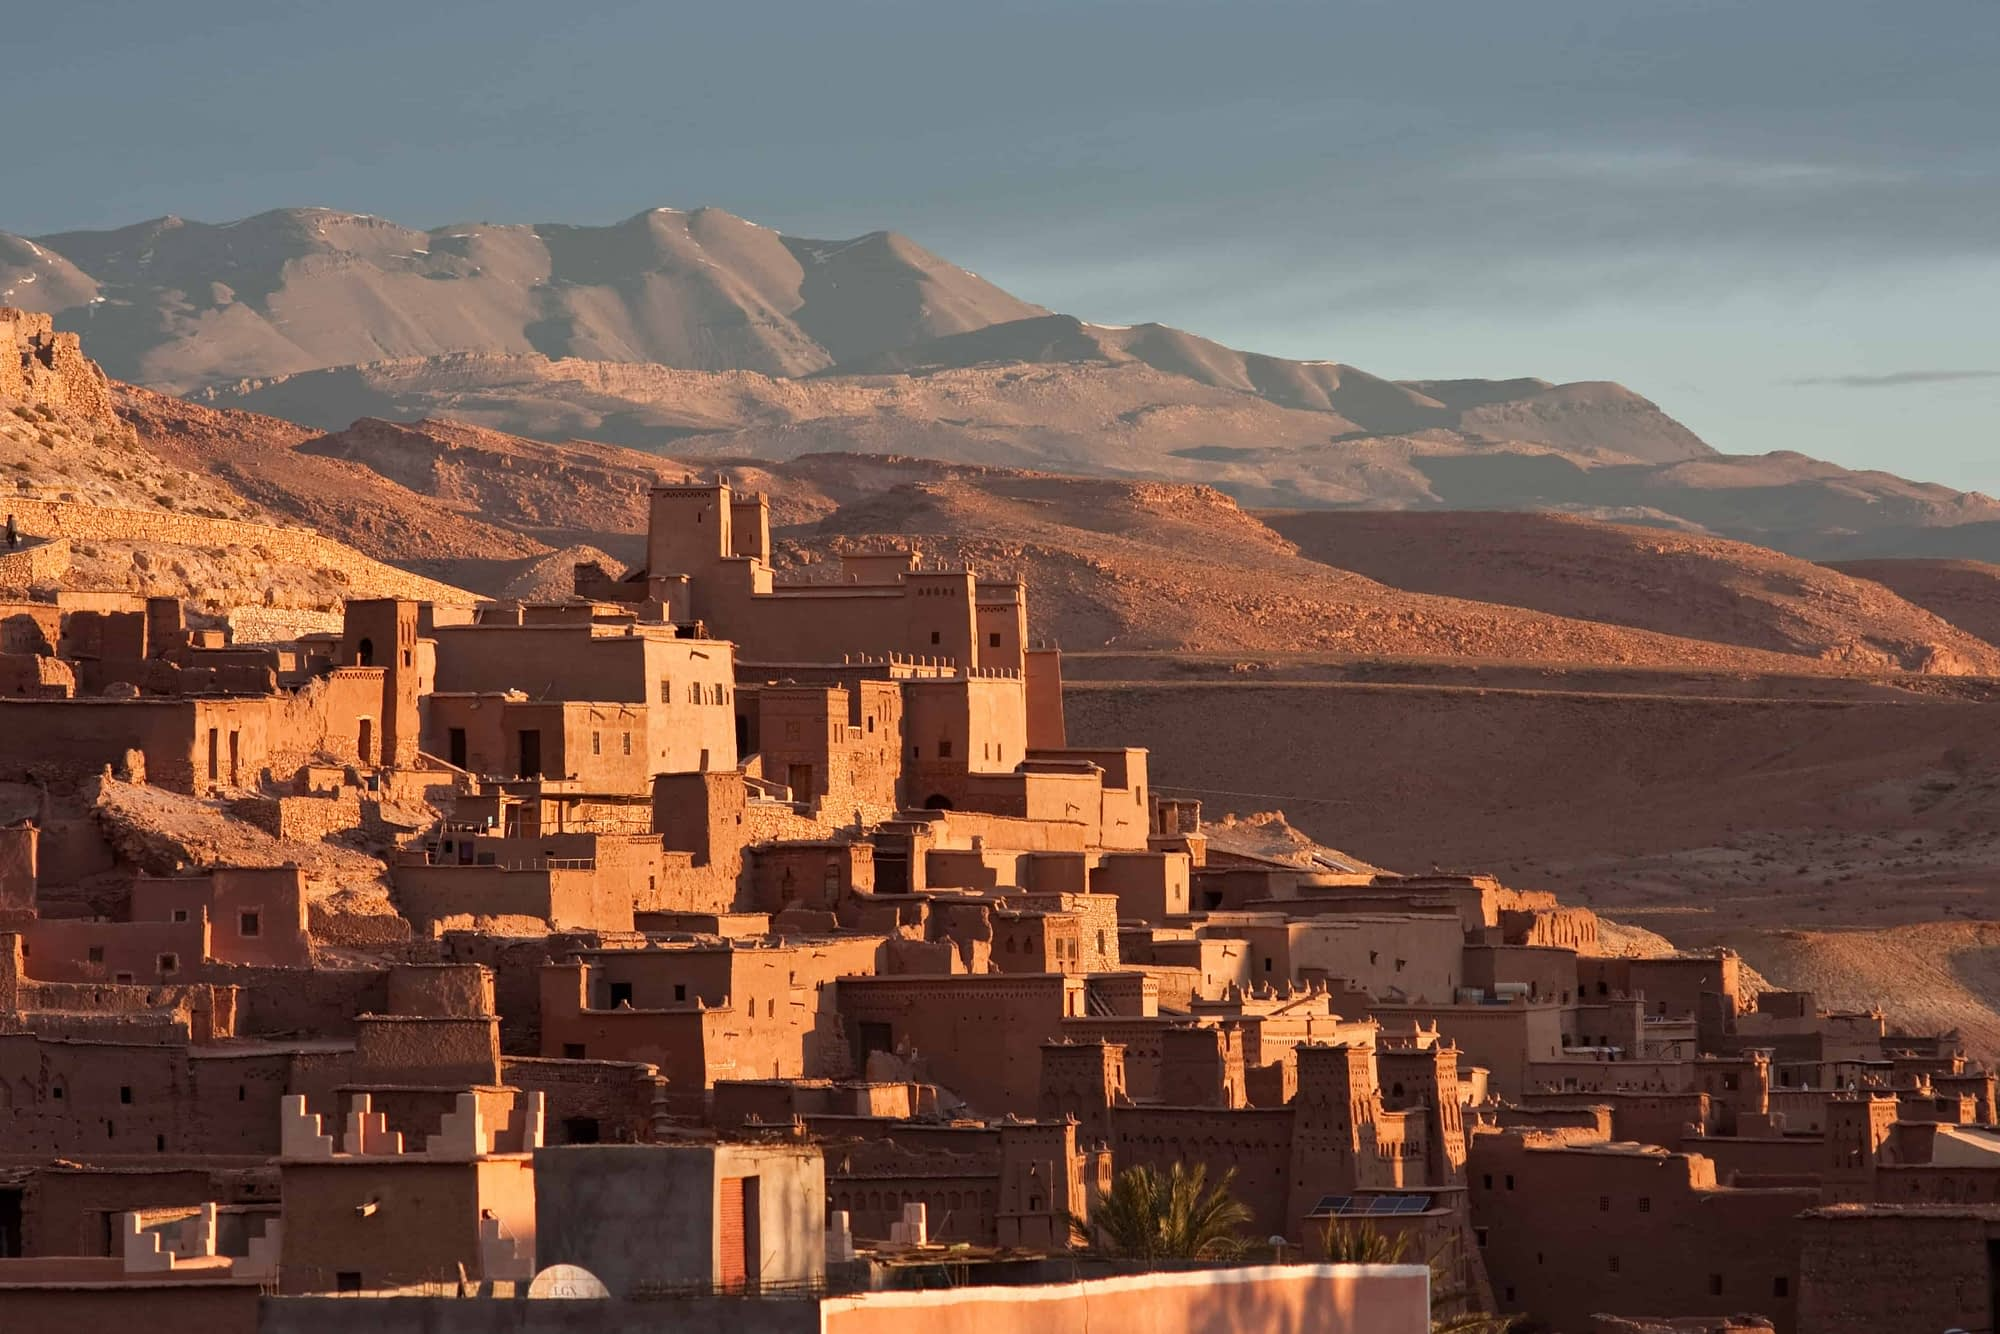 Day trip from Marrakech to the Sahara